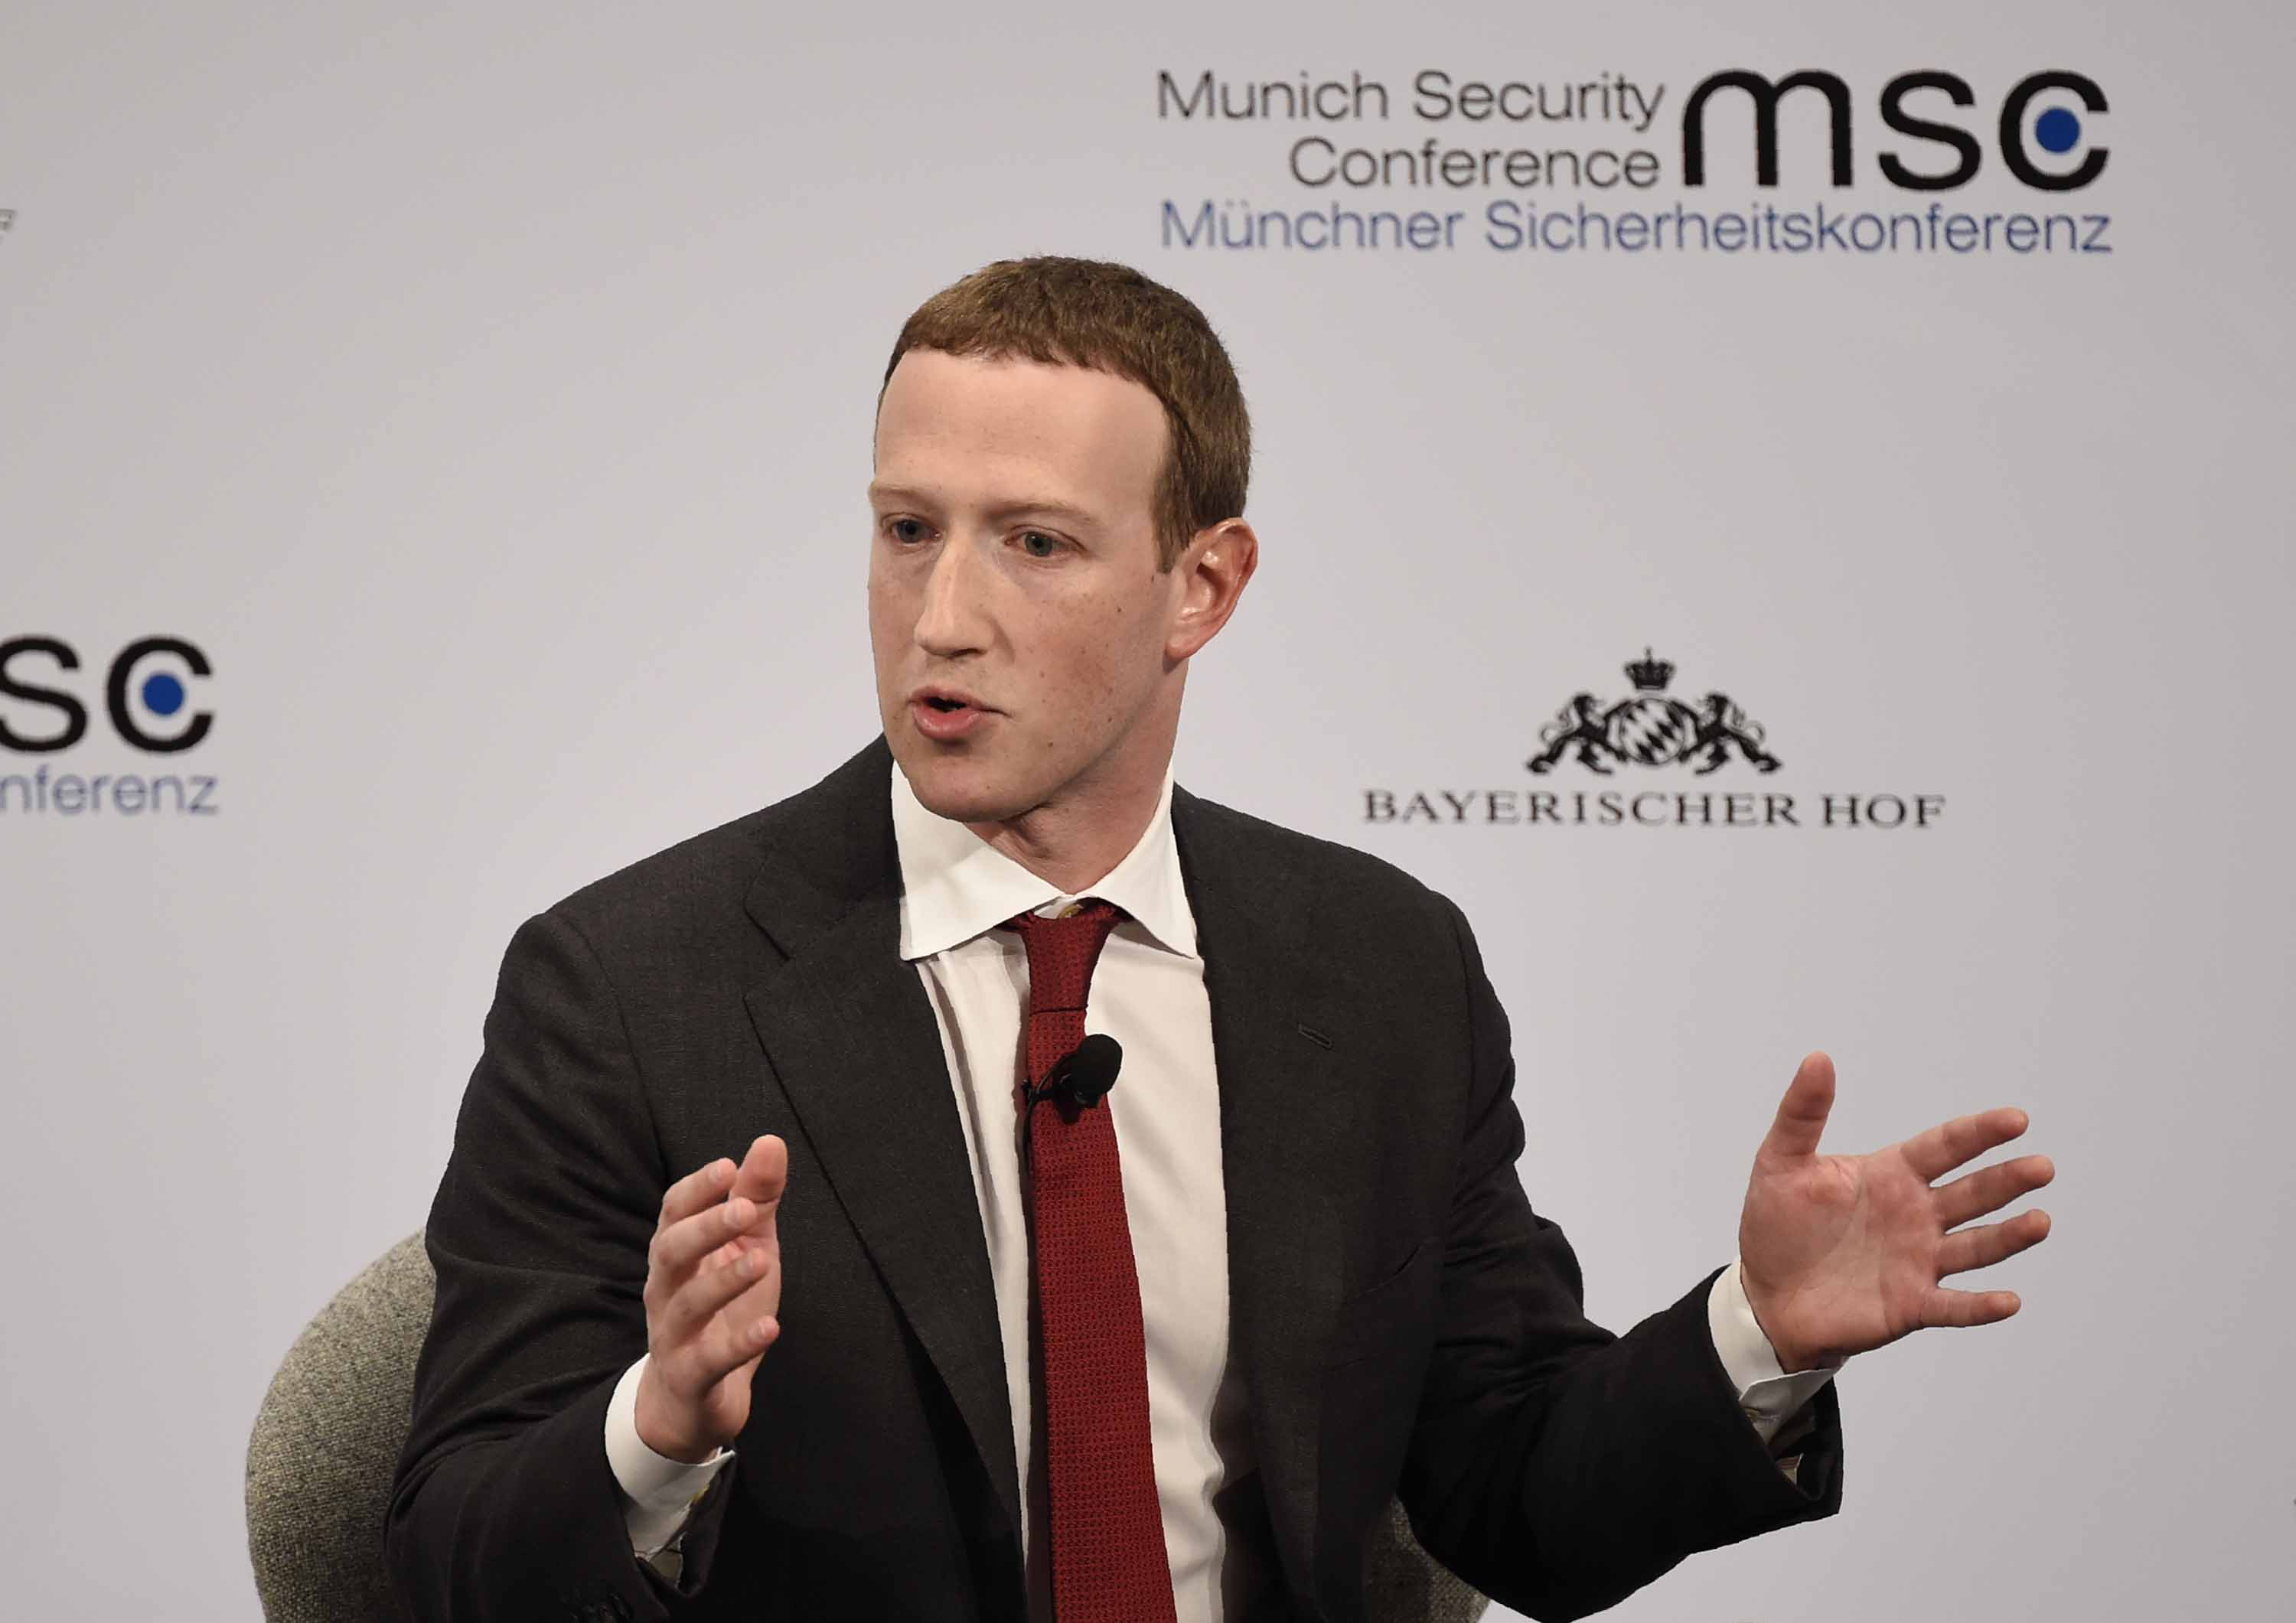 Mark Zuckerberg comes to Europe and asks for more regulation